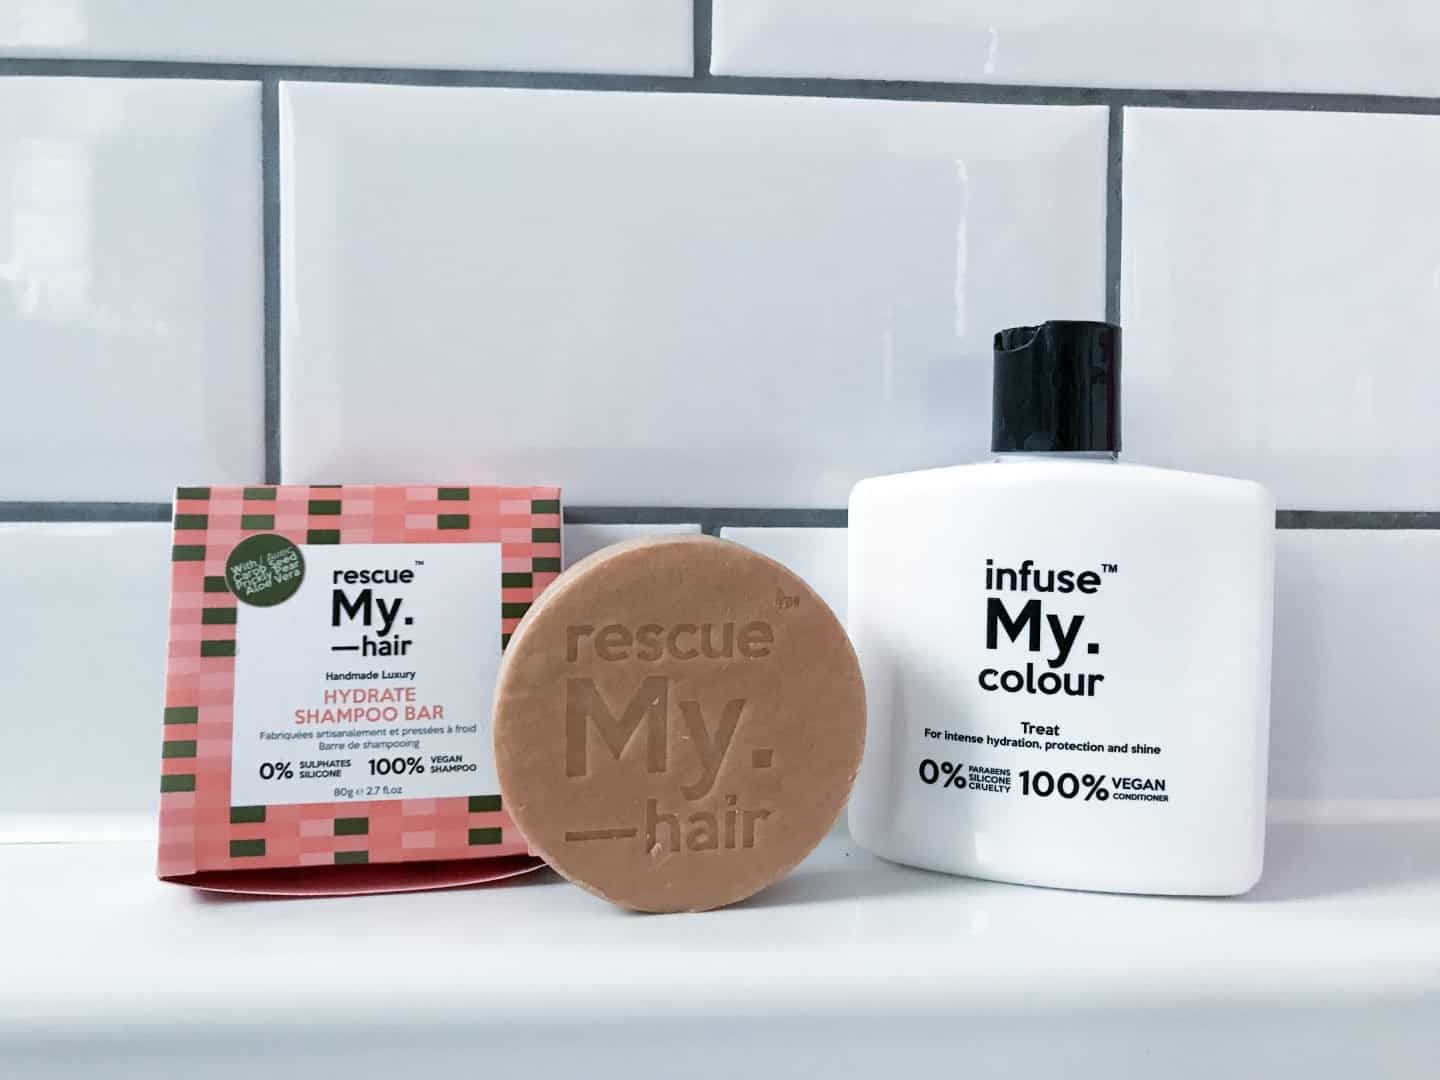 Rescue My. Hair Hydrate Shampoo Bar and Infuse My. Colour Treat Conditioner Luxury Haircare from My. Haircare